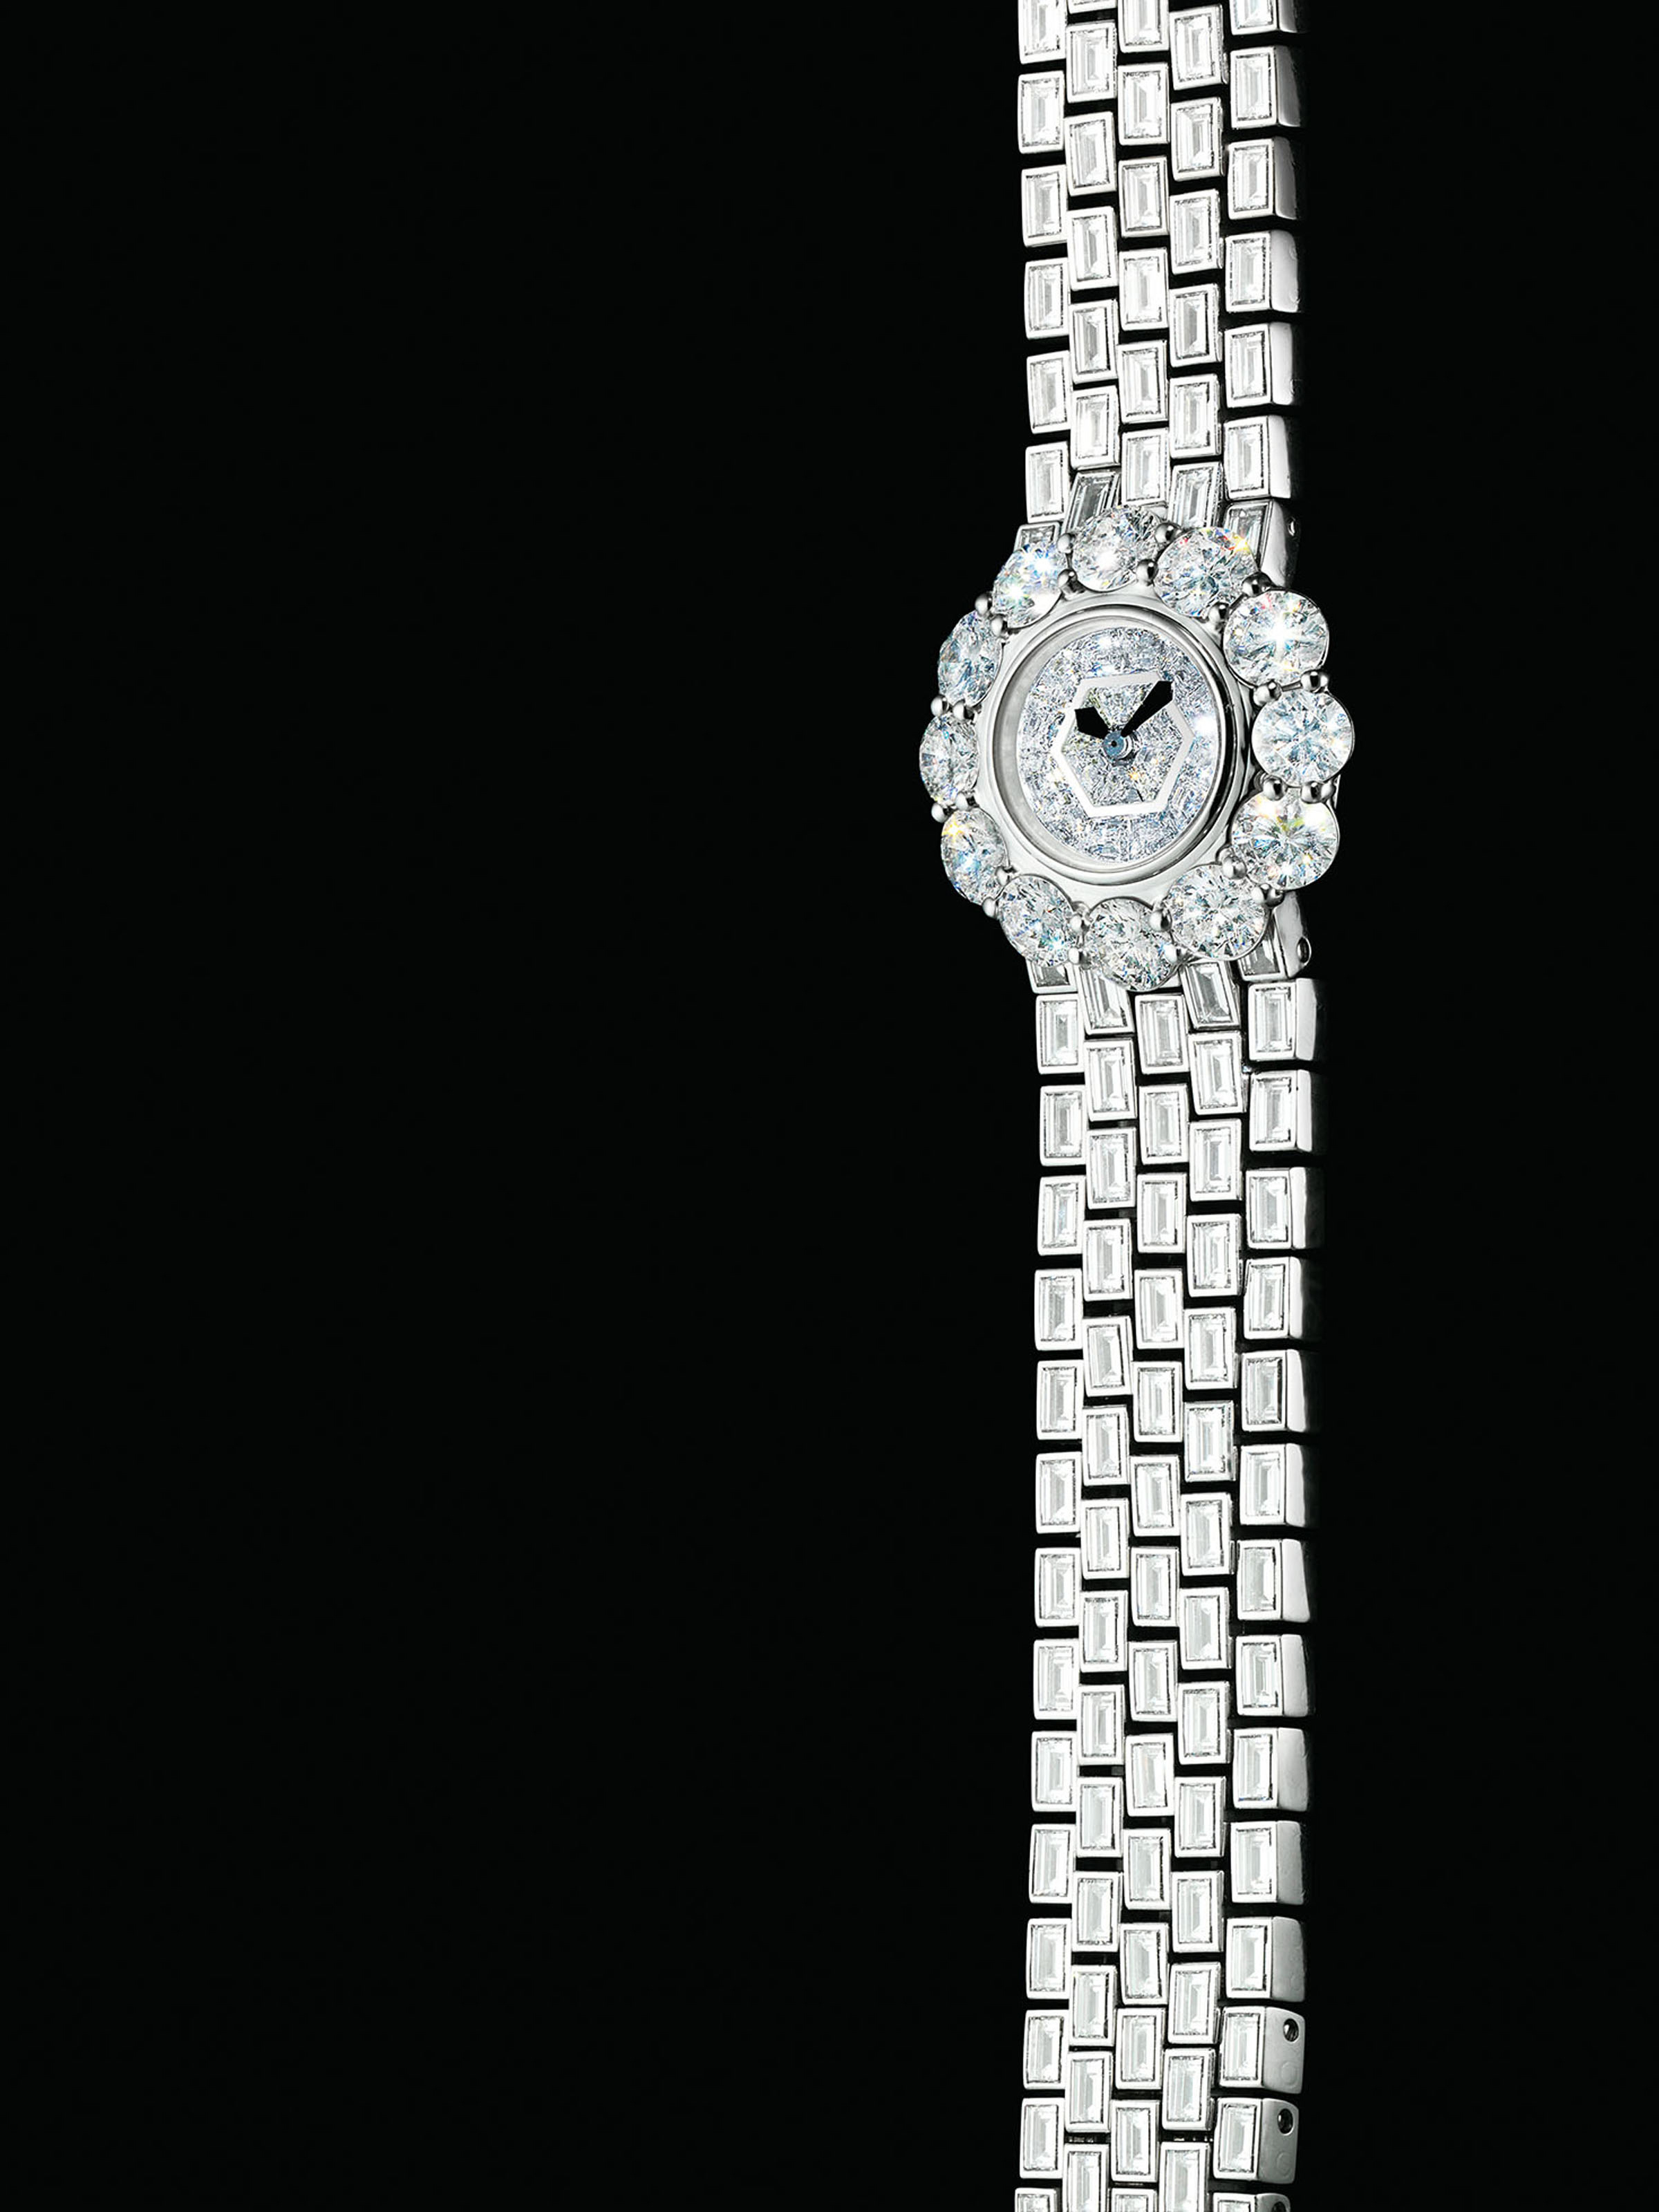 GERALD GENTA. A LADY'S FINE AND RARE 18K WHITE GOLD AND DIAMOND-SET BRACELET WATCH